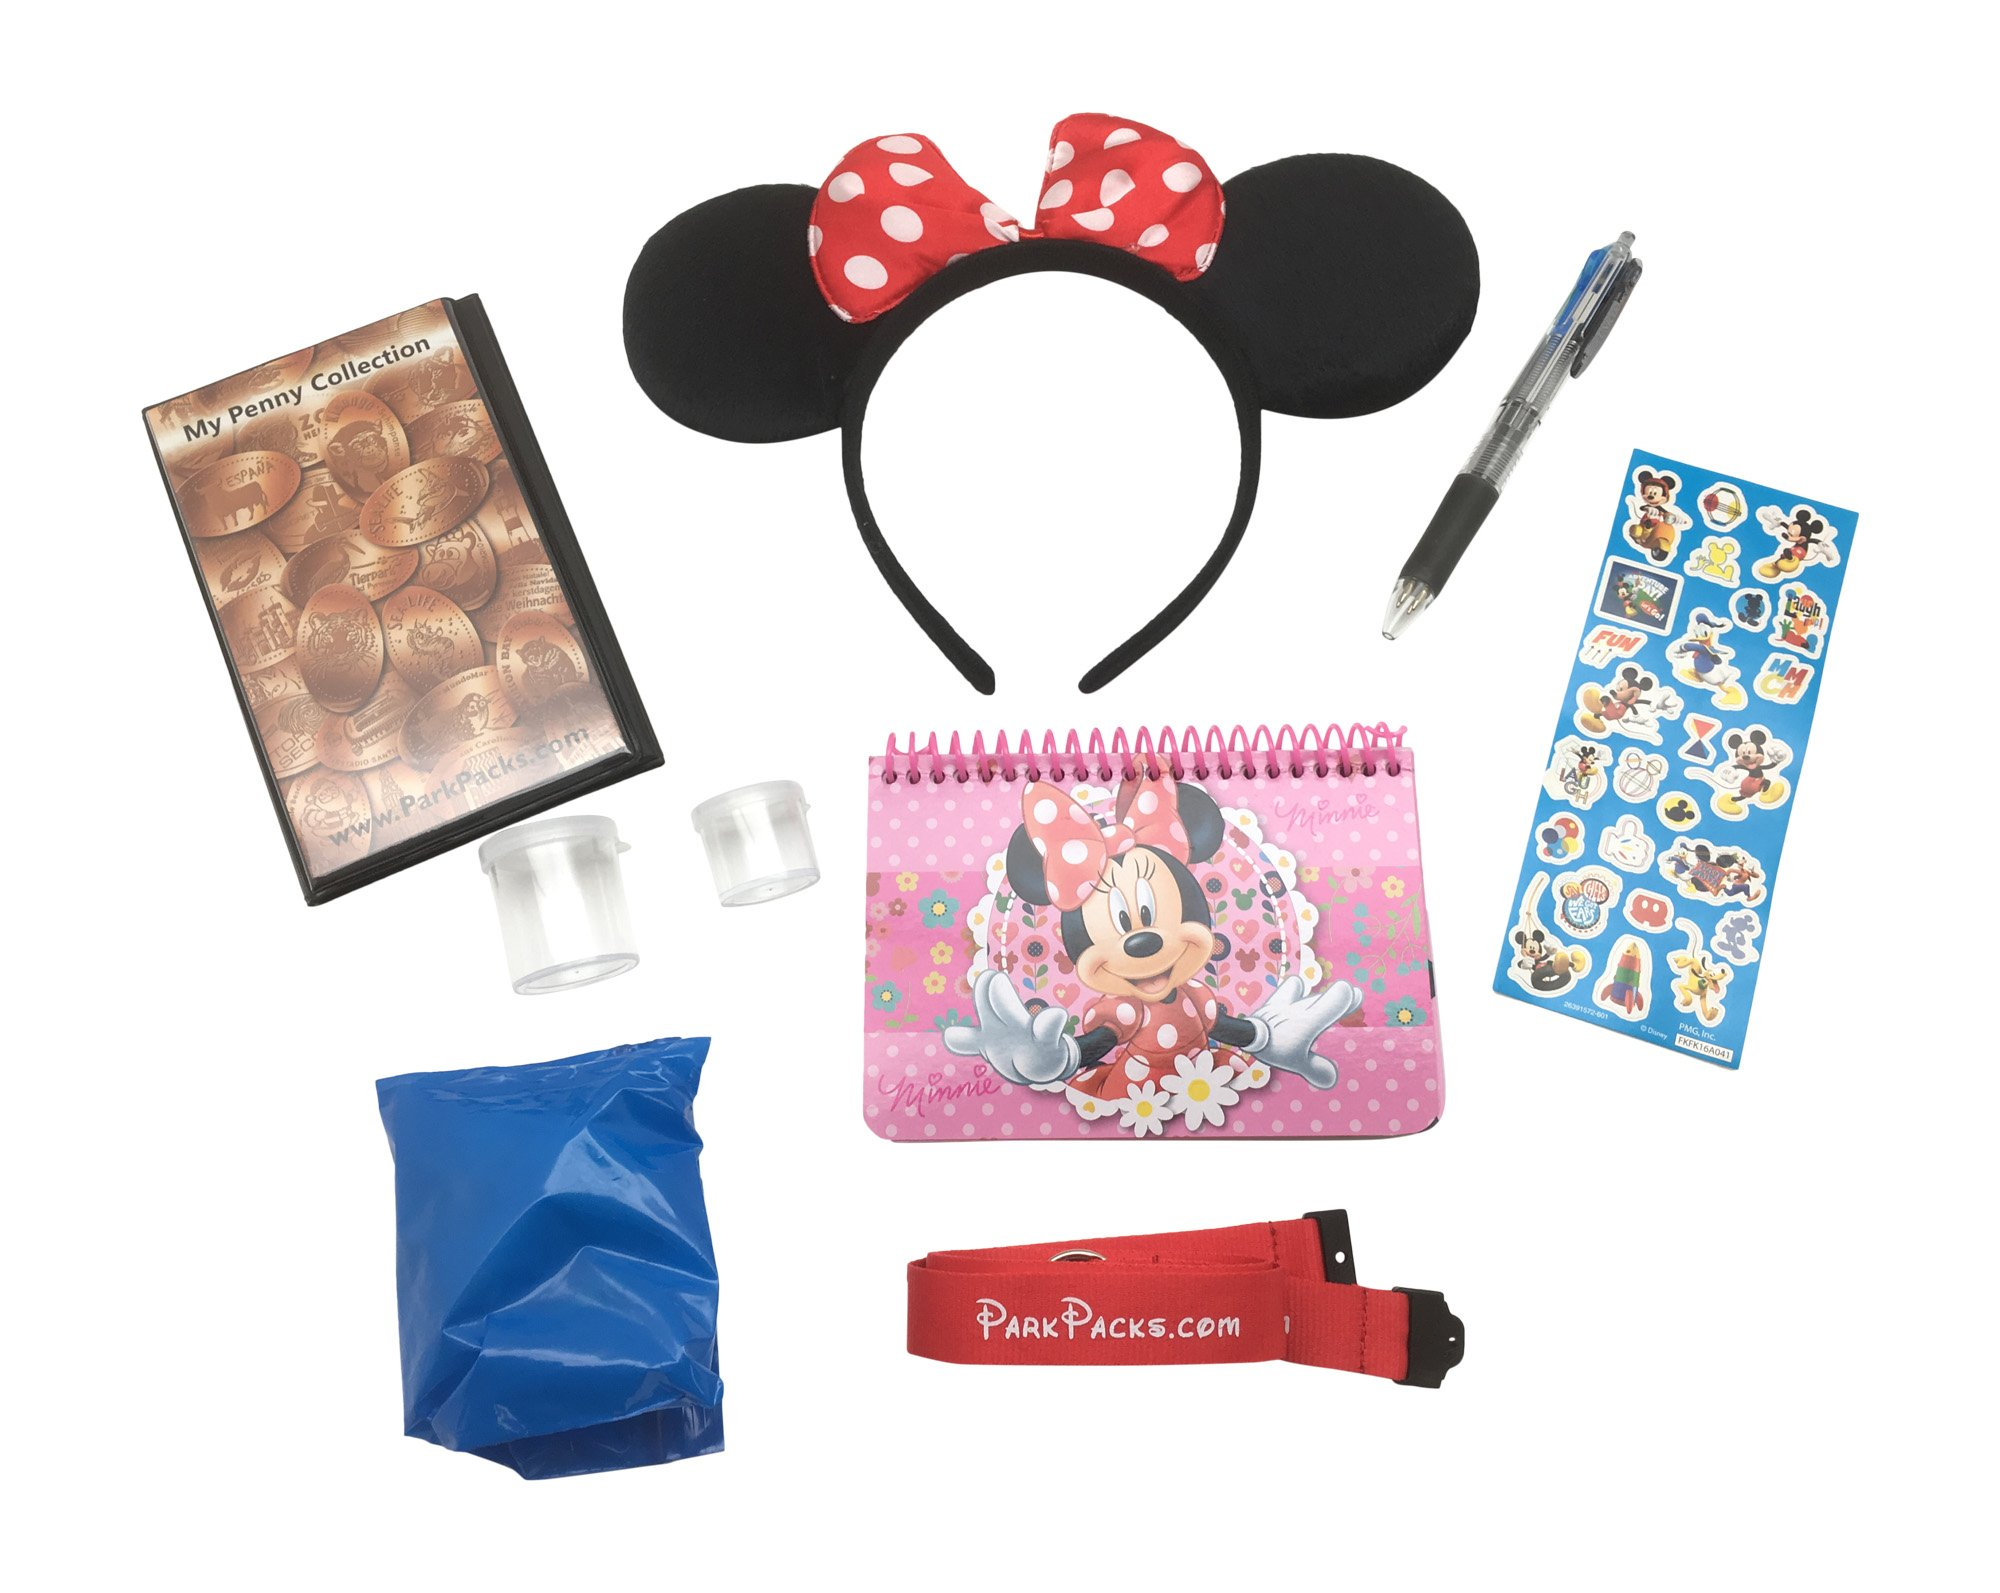 Disney VACATION Set with Essential Park Accessories & Official Autograph Book by Magical Dream Pack